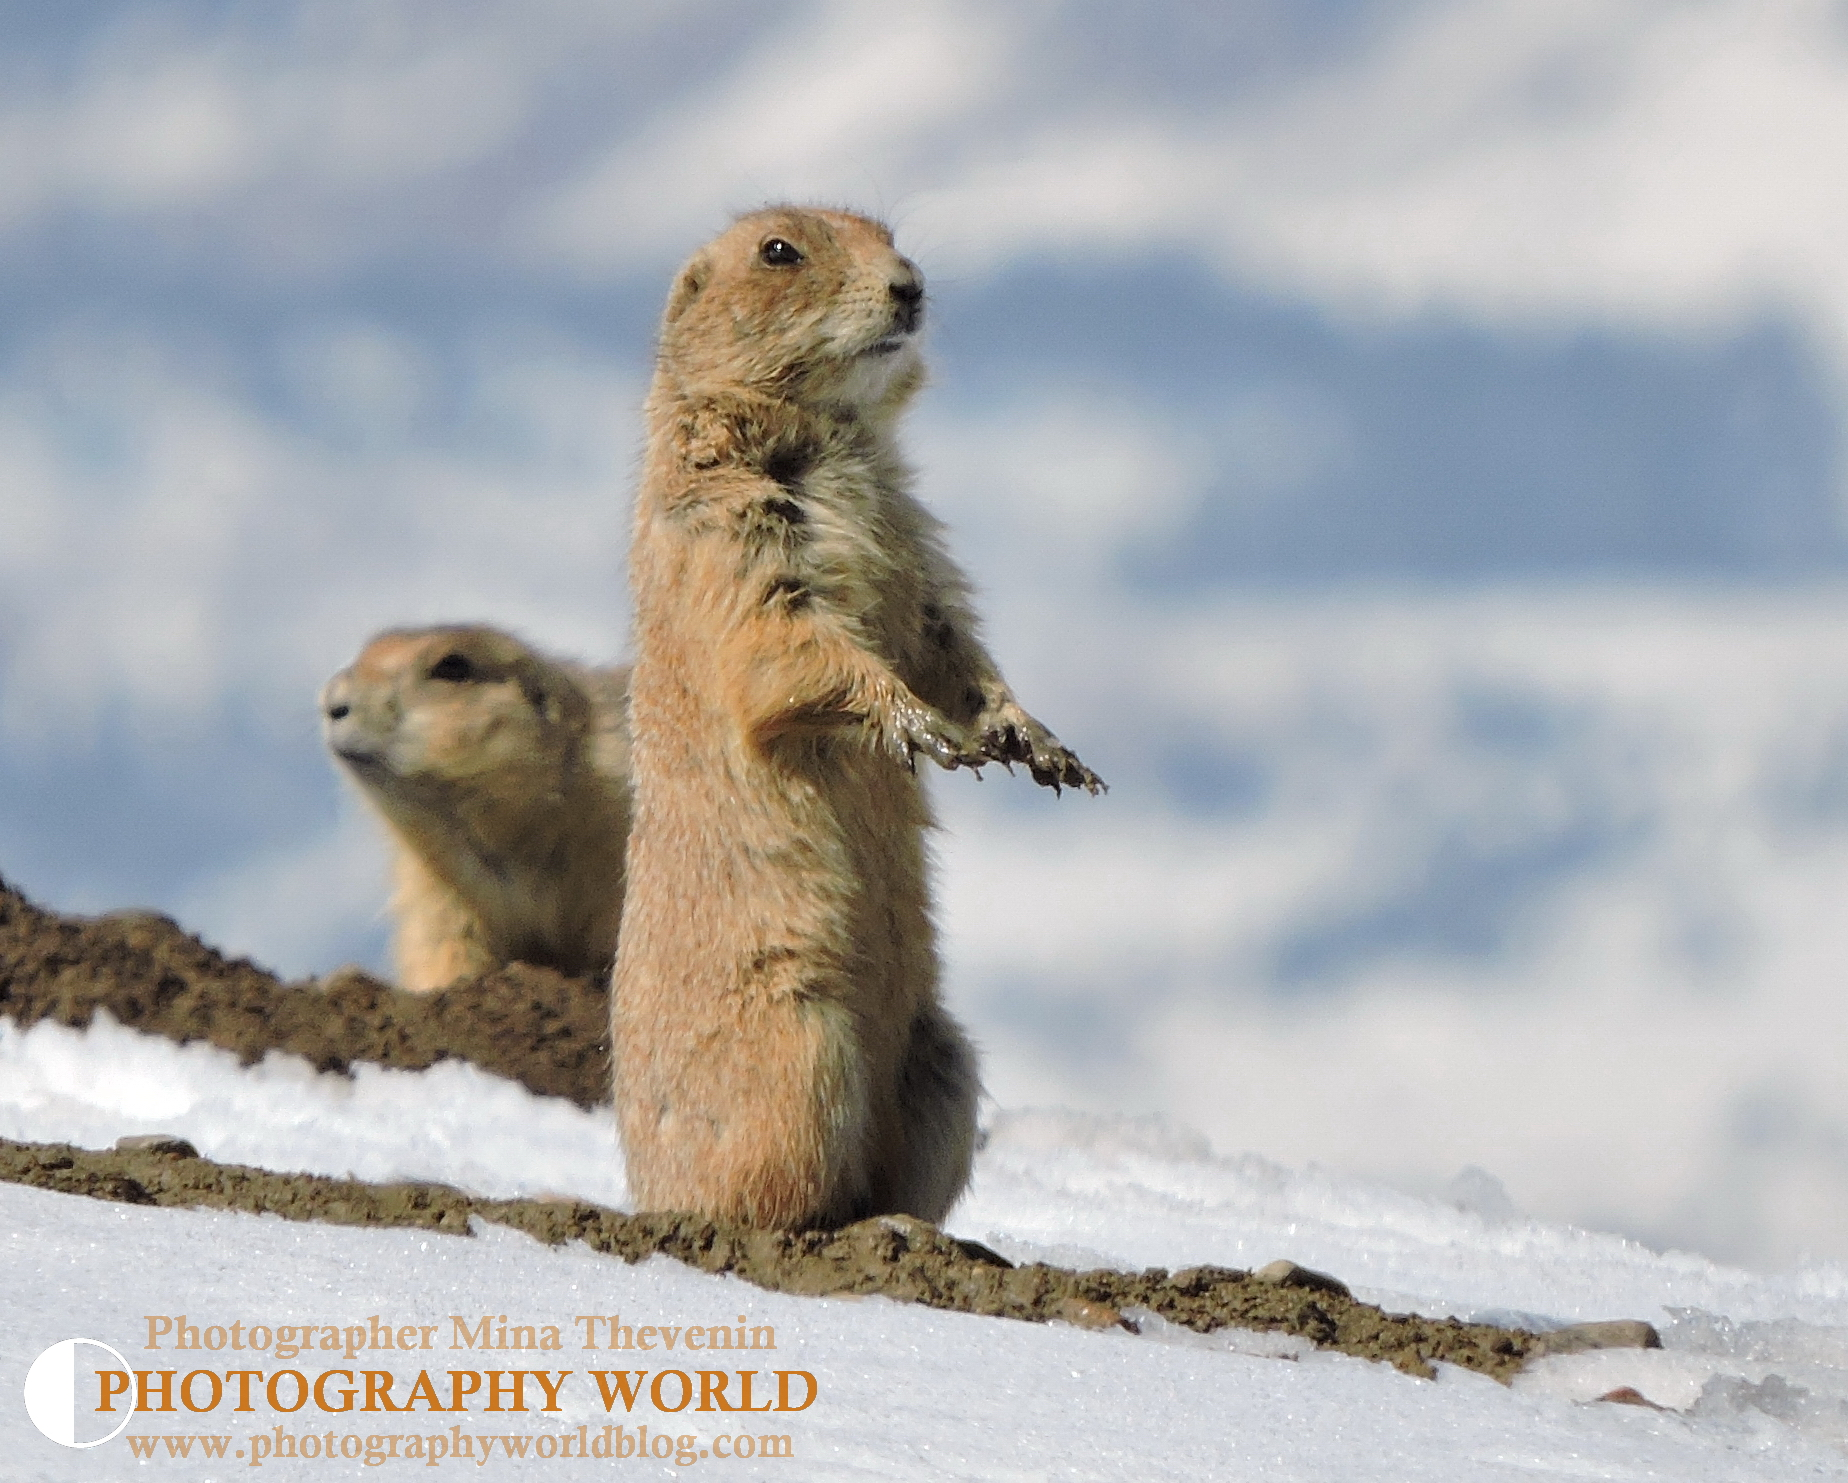 © Wet Muddy Paws. Photograph by Mina Thevenin PHOTOGRAPHYWORLD.ORG @ https://photographyworld.org/animals/black-tailed-prairie-dog-who-let-the-dogs-out/